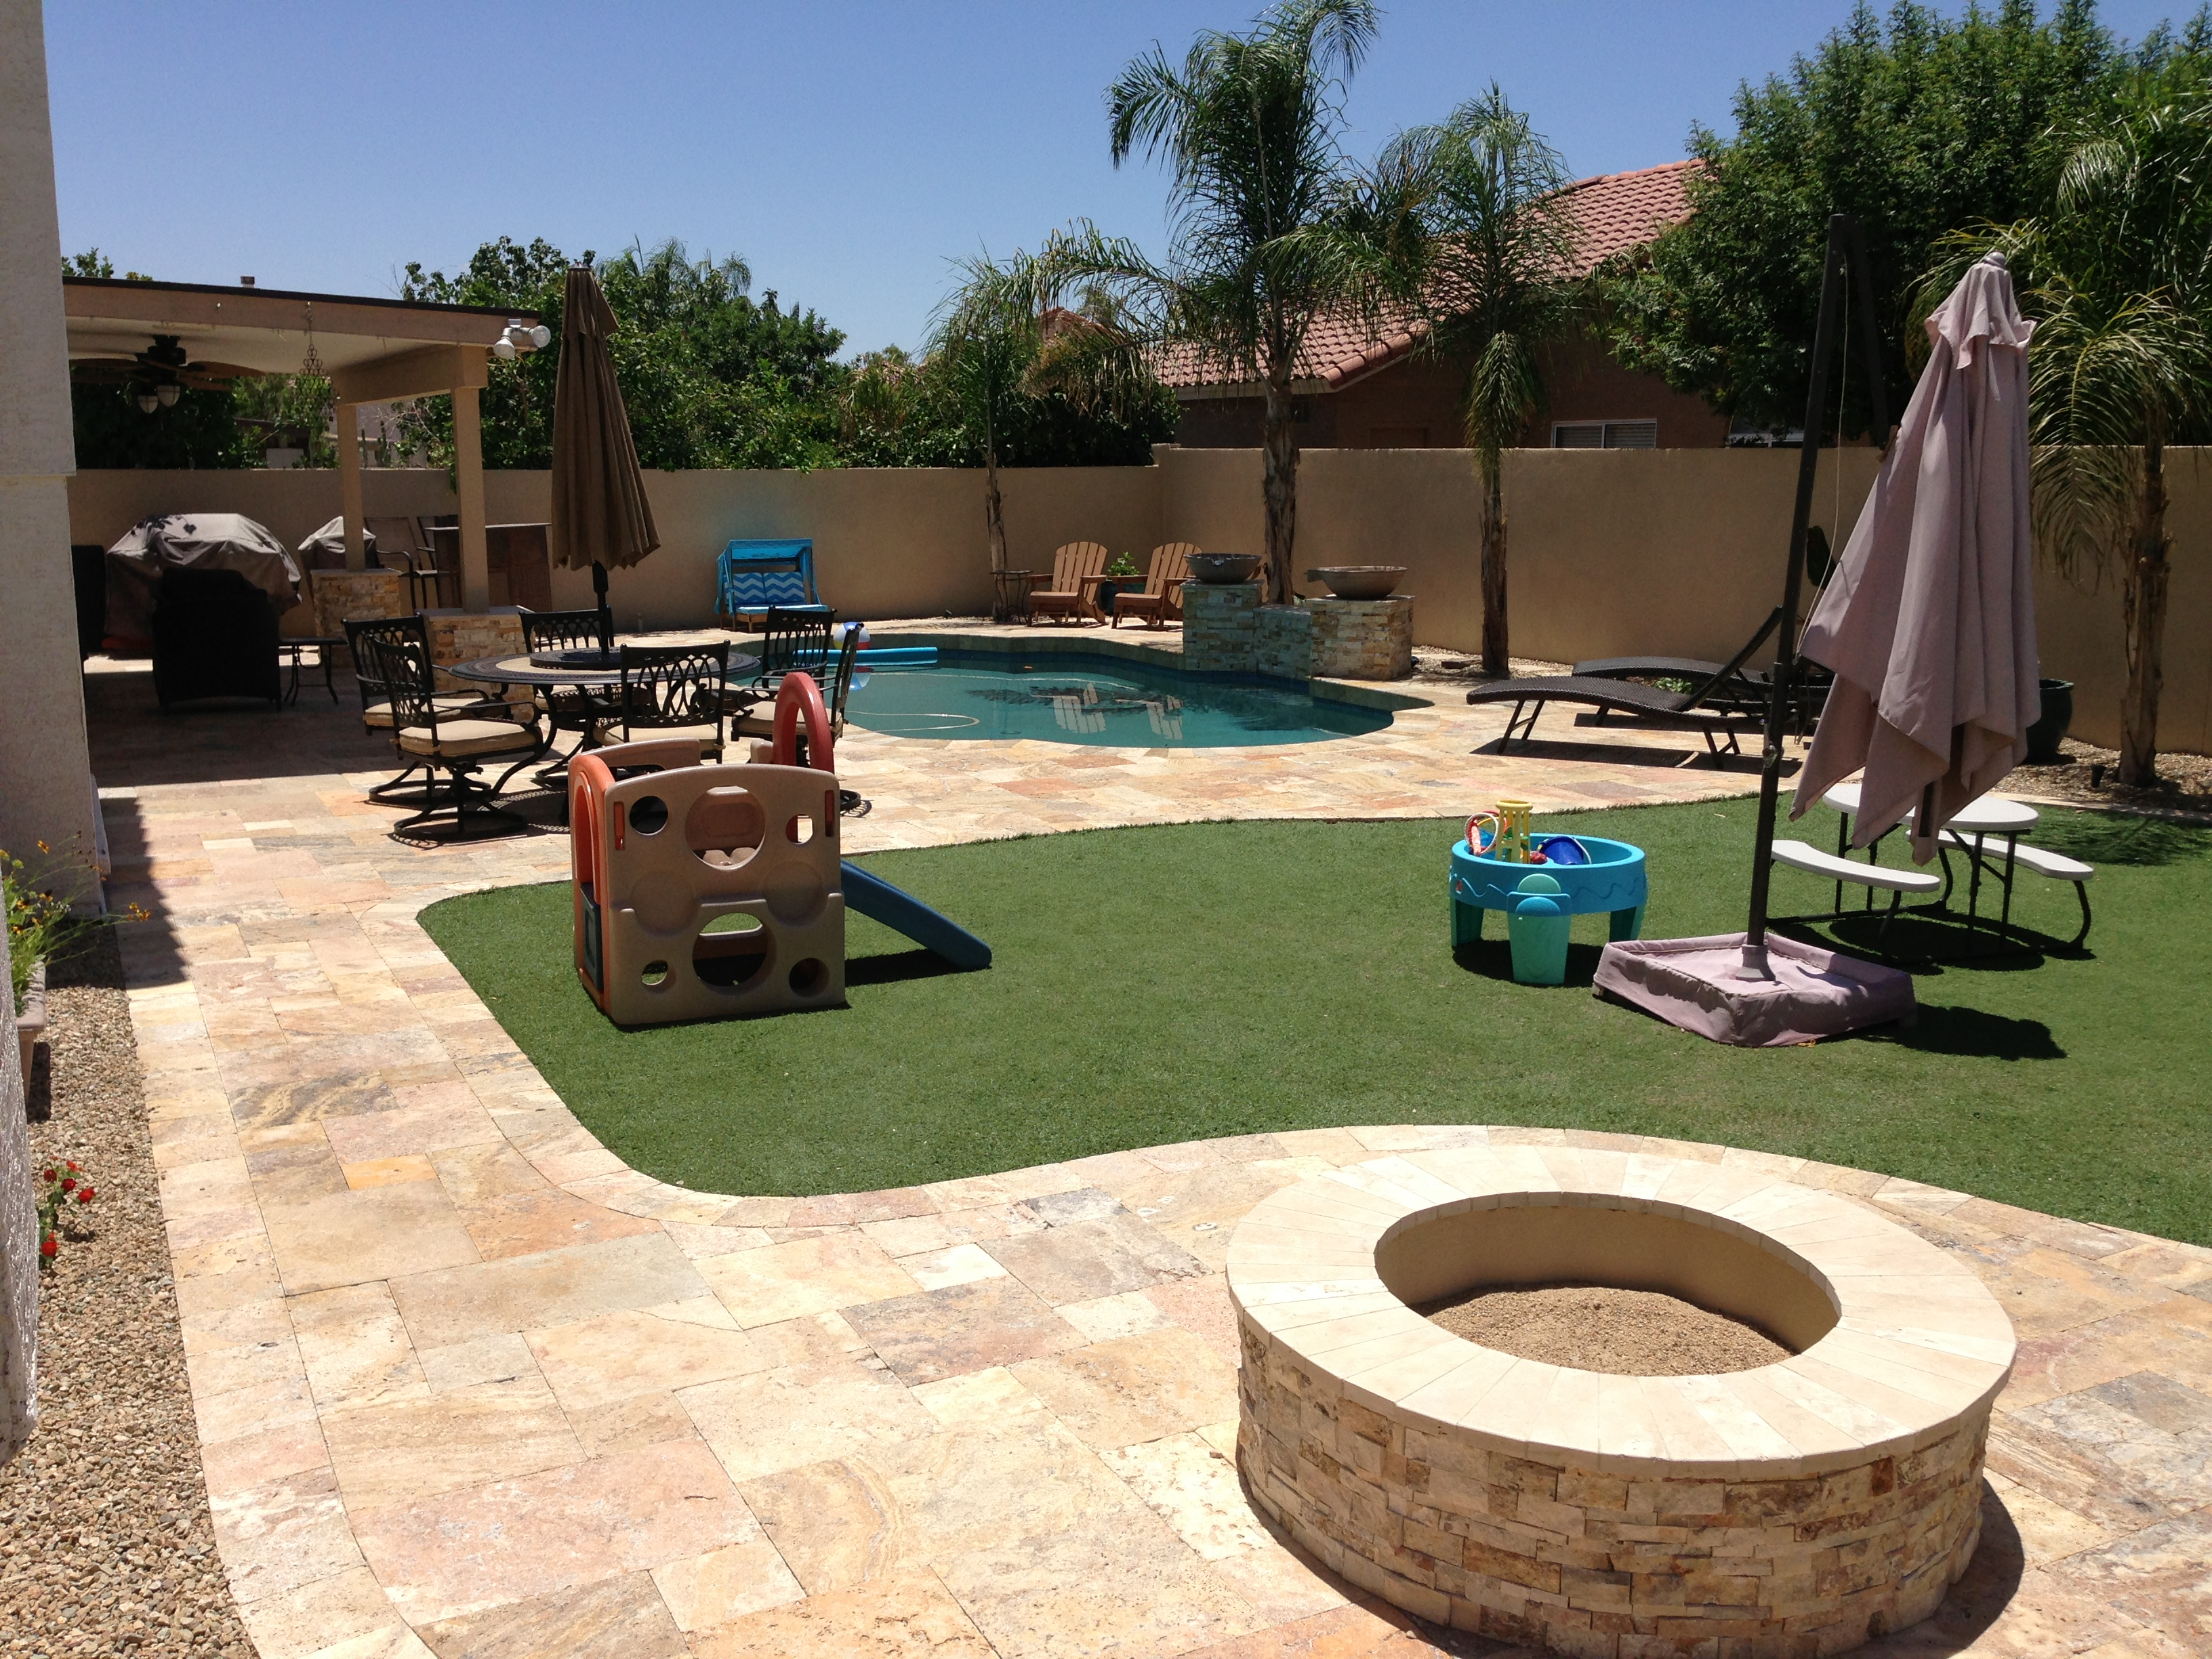 Amazing Phoenix Landscape Renovation Creates Family Fun!